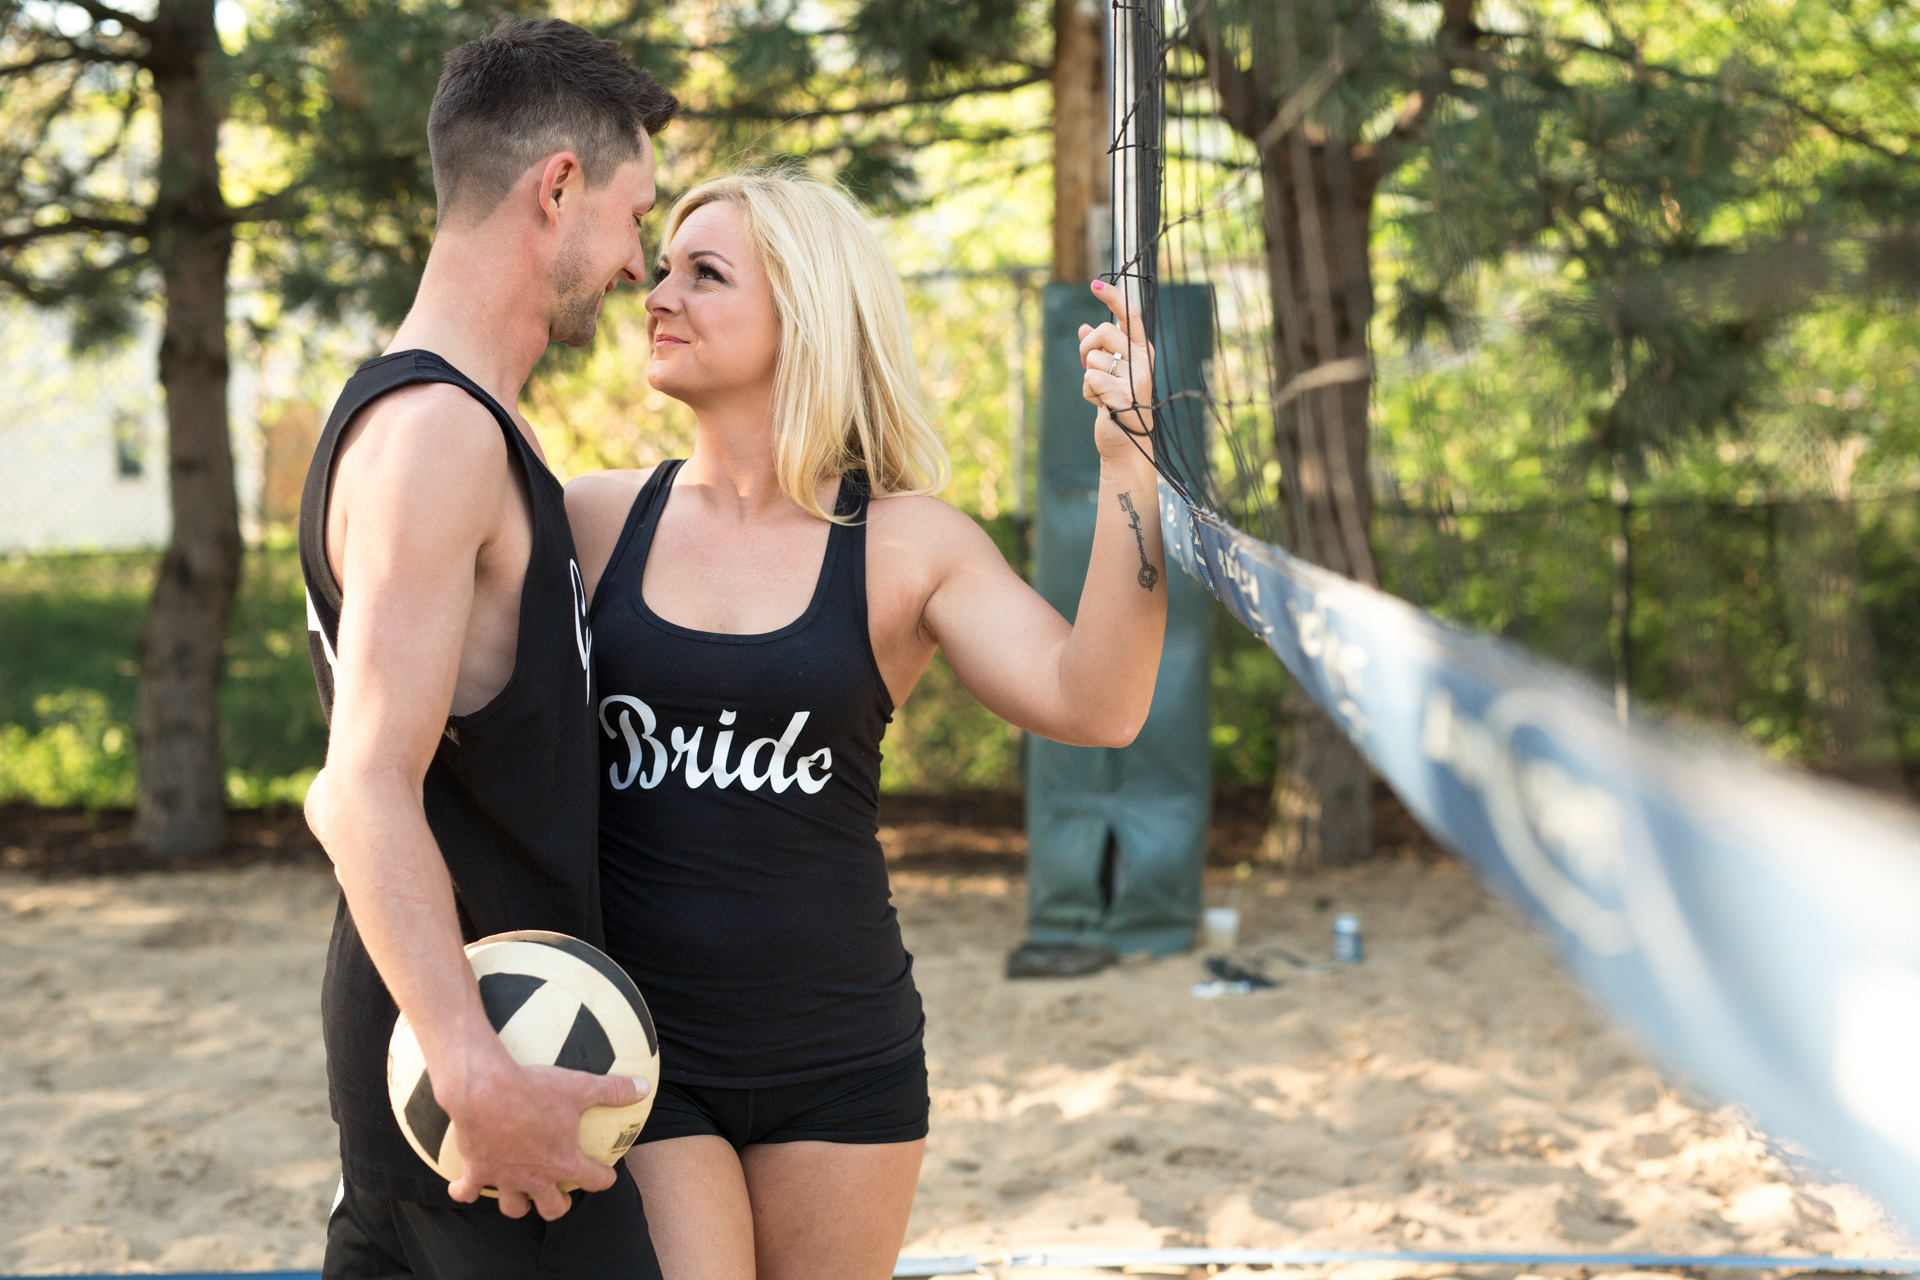 The Faits Peoria Bloomington Normal Central Illinois Unique Wedding Photographers Photographer Engagement Photography Uptown Normal Engagement Volleyball engagement-4.jpg